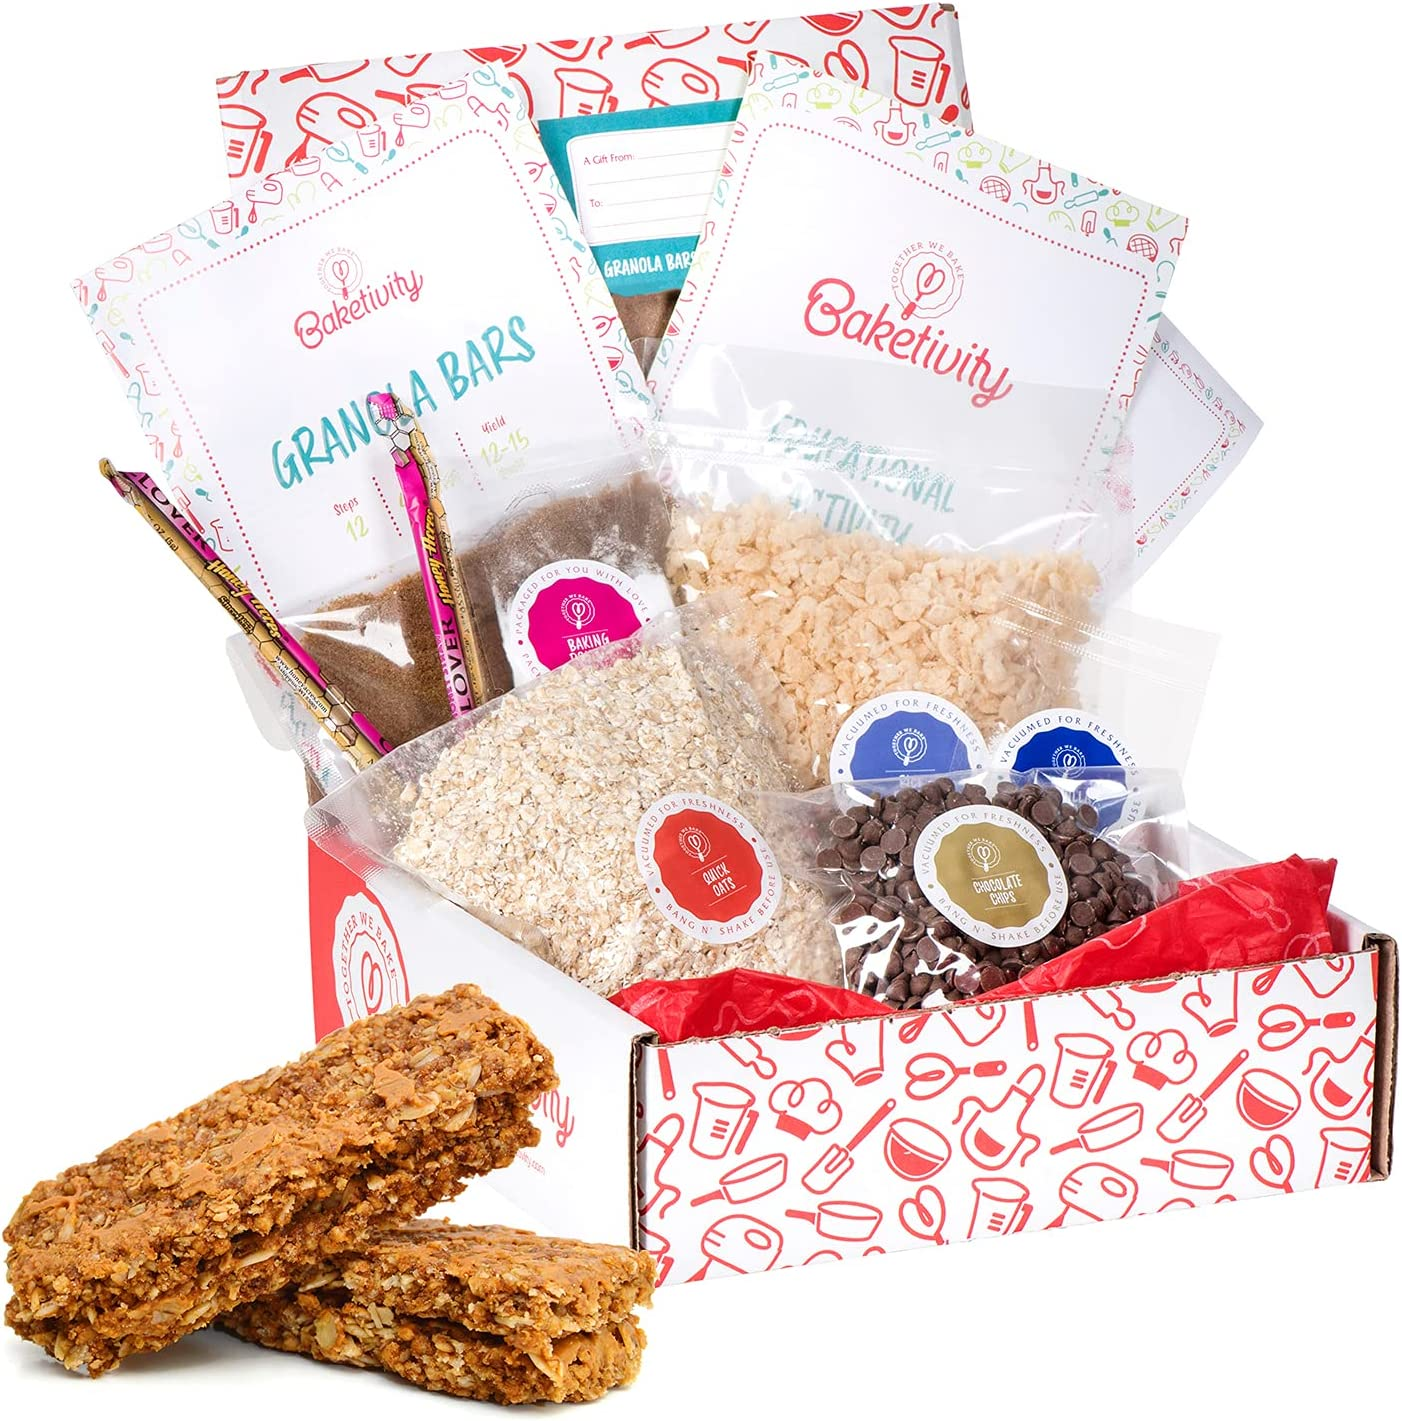 BAKETIVITY Kids Baking DIY Activity Kit - Bake Delicious Healthy Gluten Free Granola Bars with Pre-Measured Ingredients – Best Gift Idea for Boys and Girls Ages 6-12